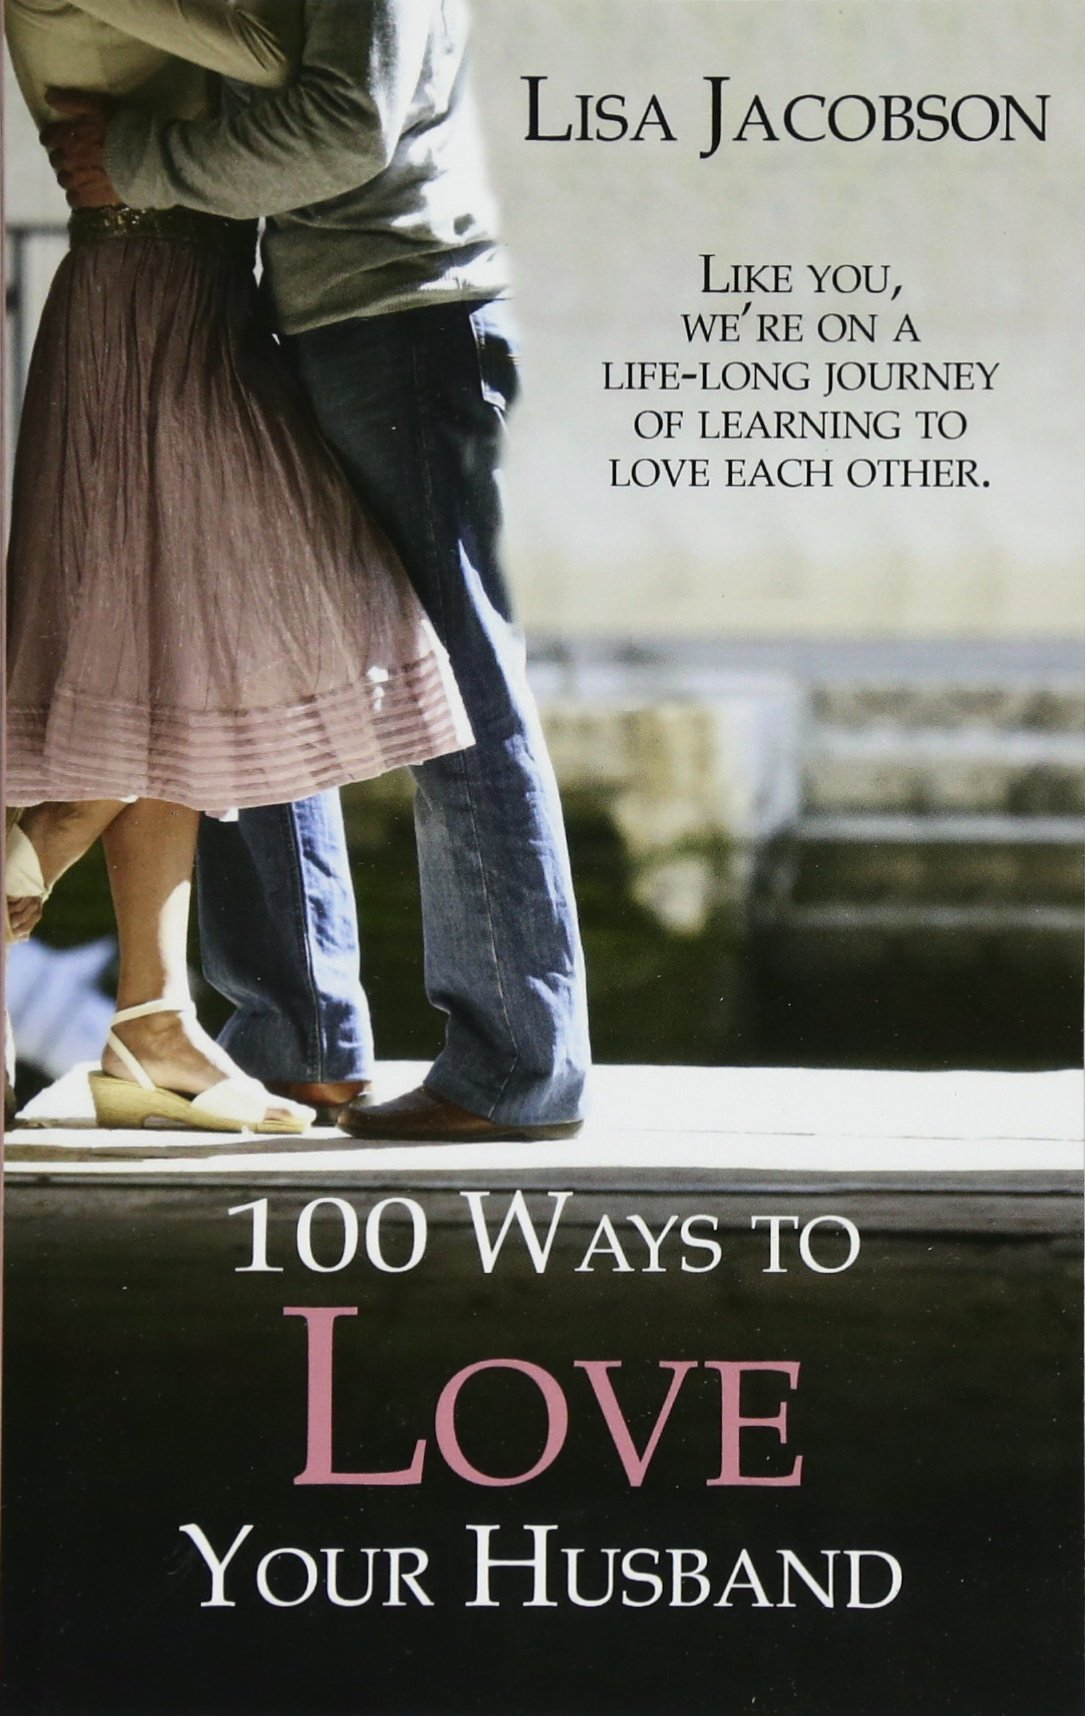 100 Ways To Love Your Husband: the life-long journey of learning to love  each other: Lisa Jacobson: 9781929125319: Amazon.com: Books